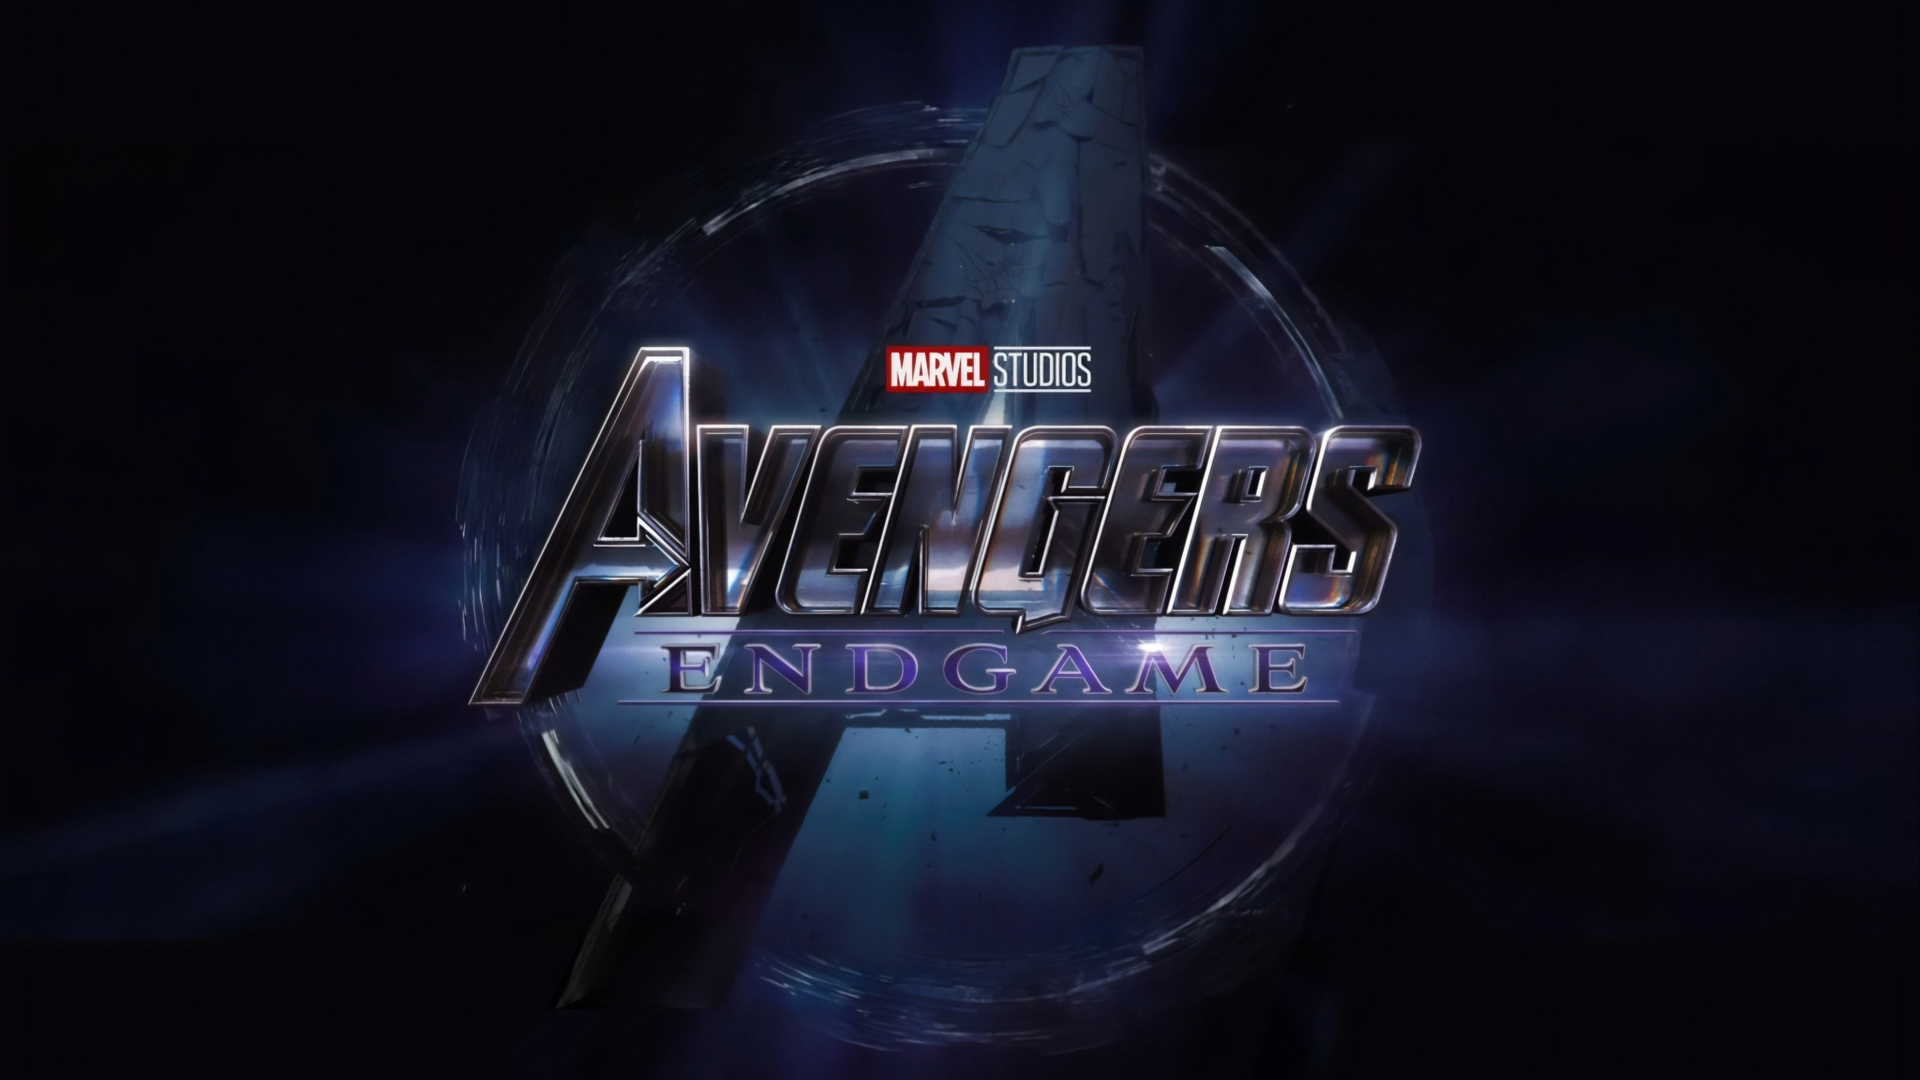 Avengers Endgame Backgrounds